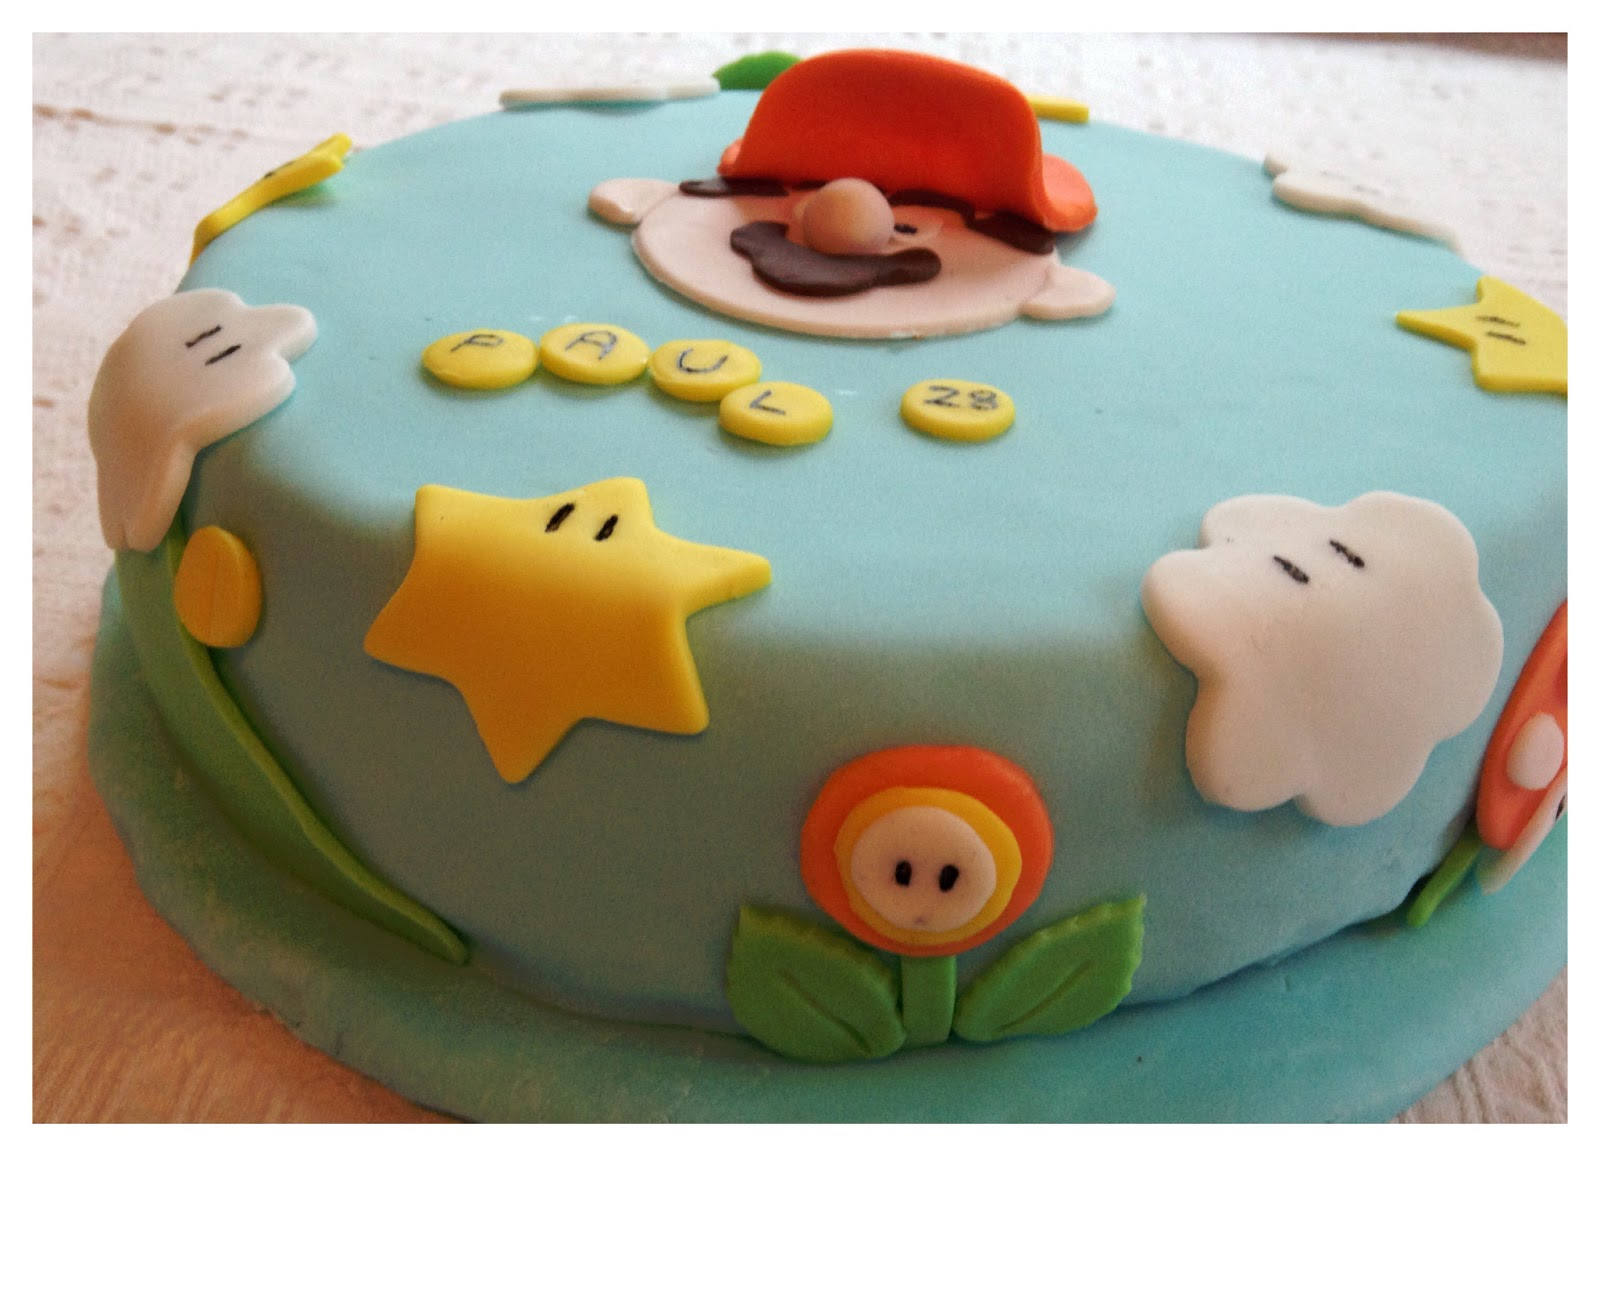 die raupe nimmersatt essen macht spa super mario kuchen. Black Bedroom Furniture Sets. Home Design Ideas